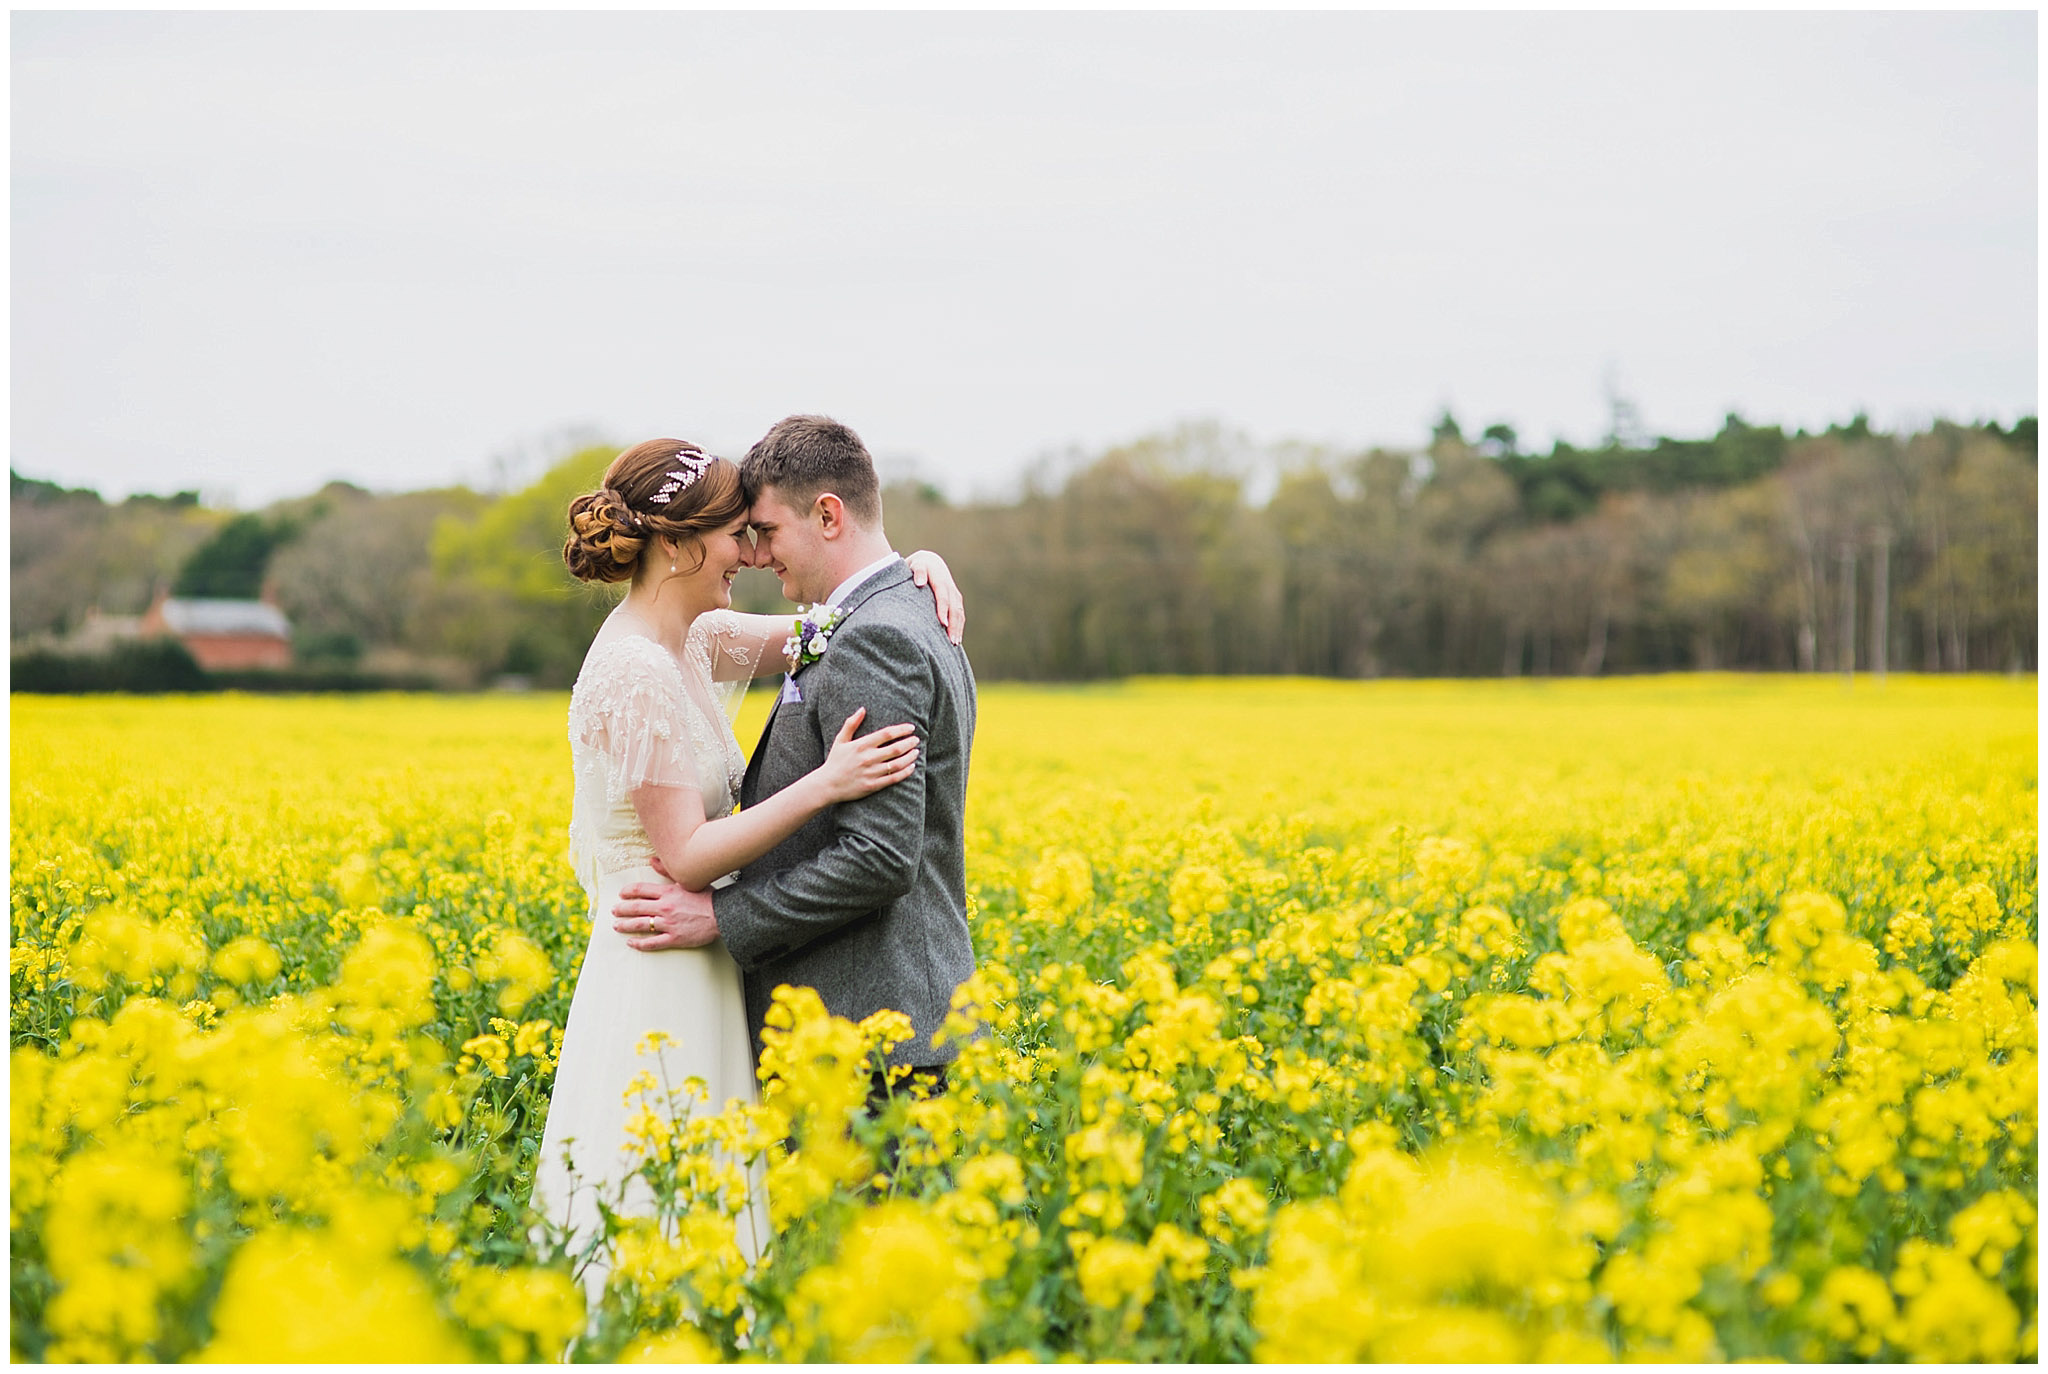 Sarah-&-Dan-The-Old-Vicarage-Wedding-Venue-Dorset-Photographer-31